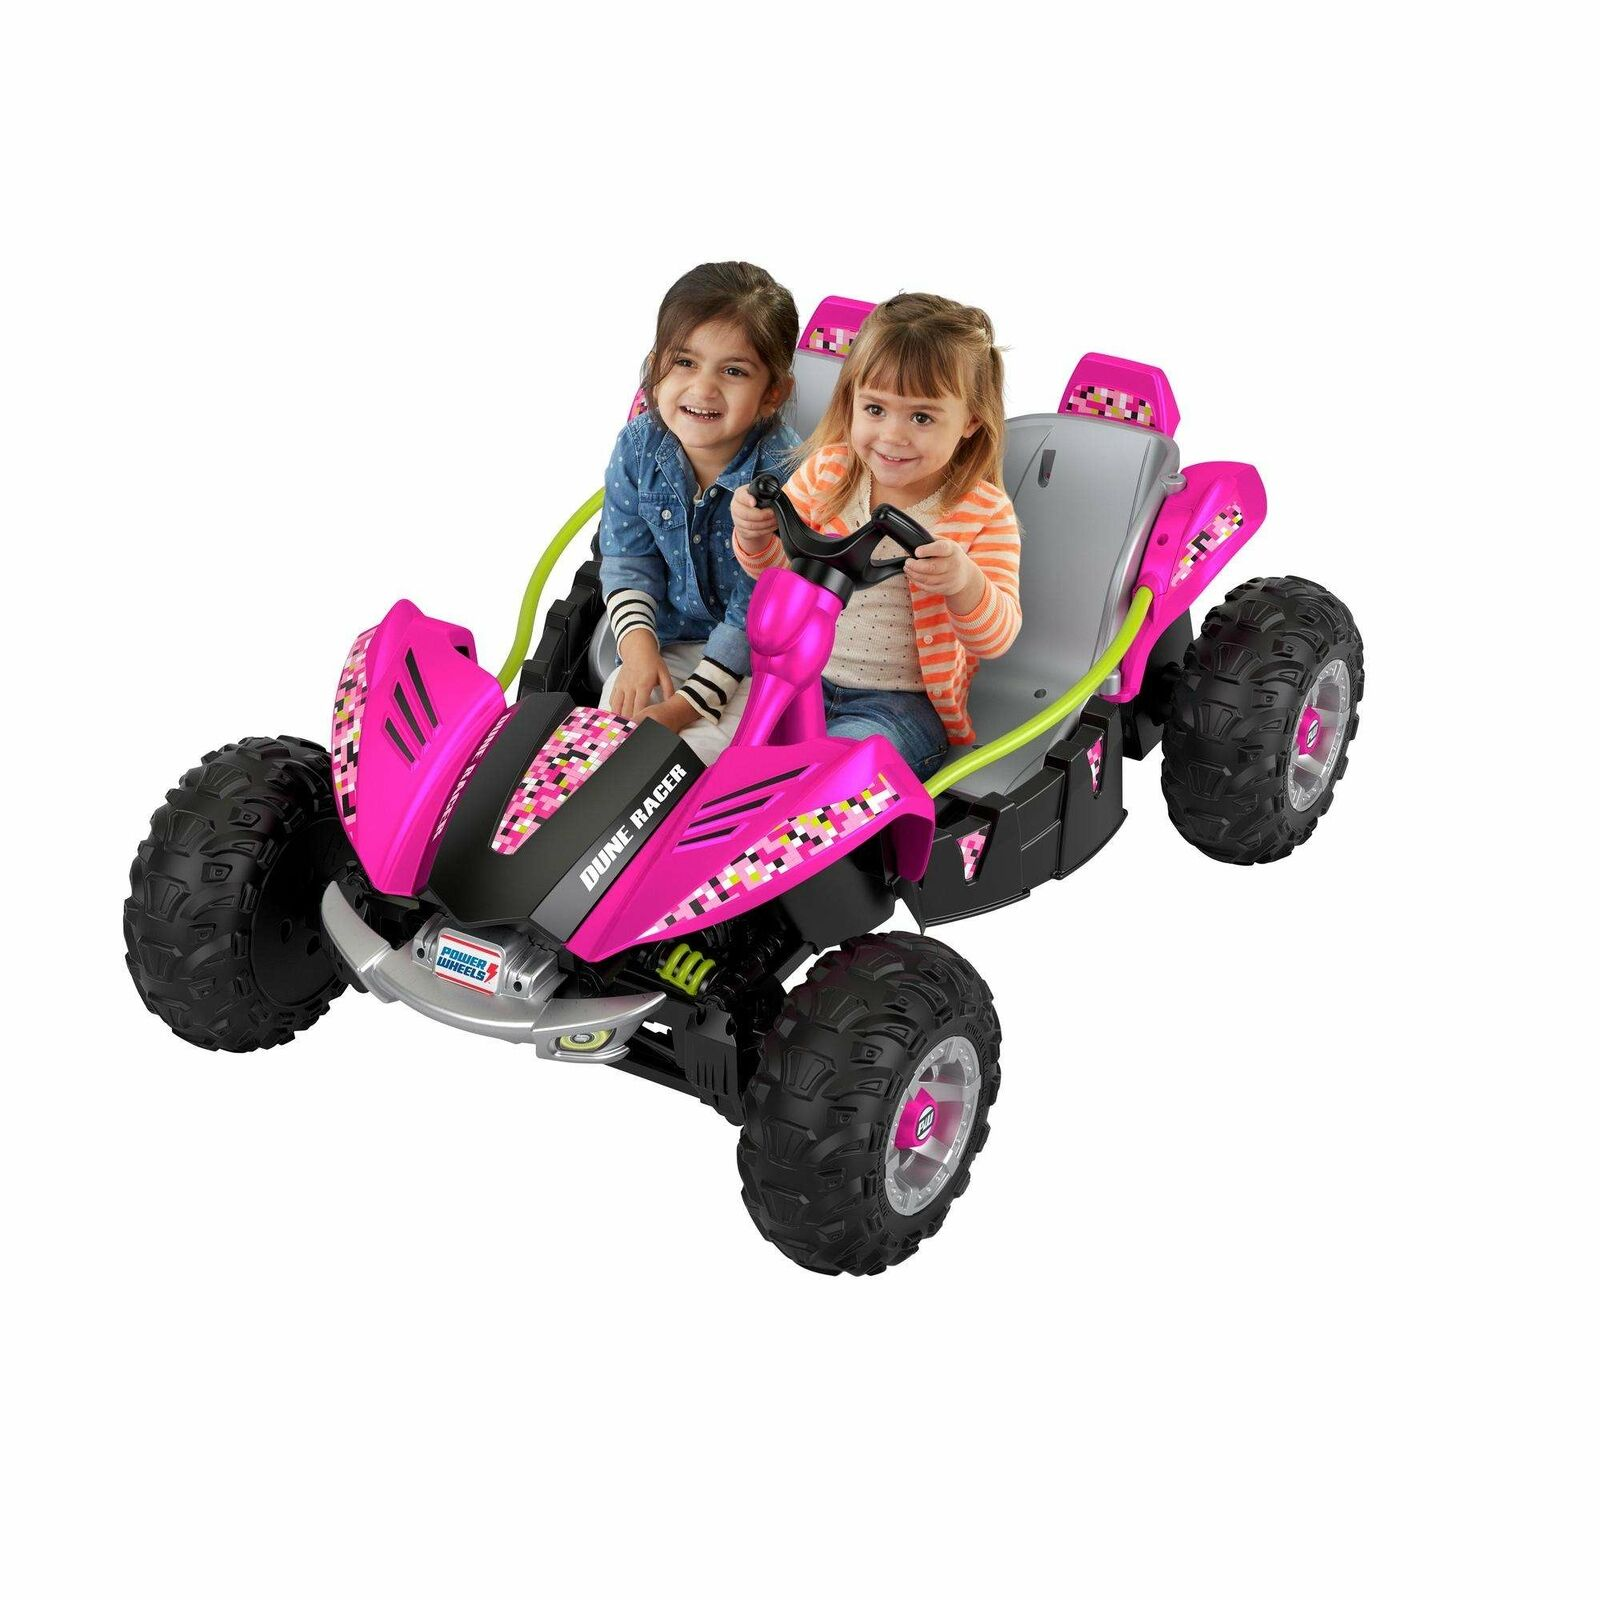 power wheels barbie cadillac escalade 12 volt ride on hot pink for sale online ebay new kids power wheels 12 volt battery powered ride on dune racer extreme pink